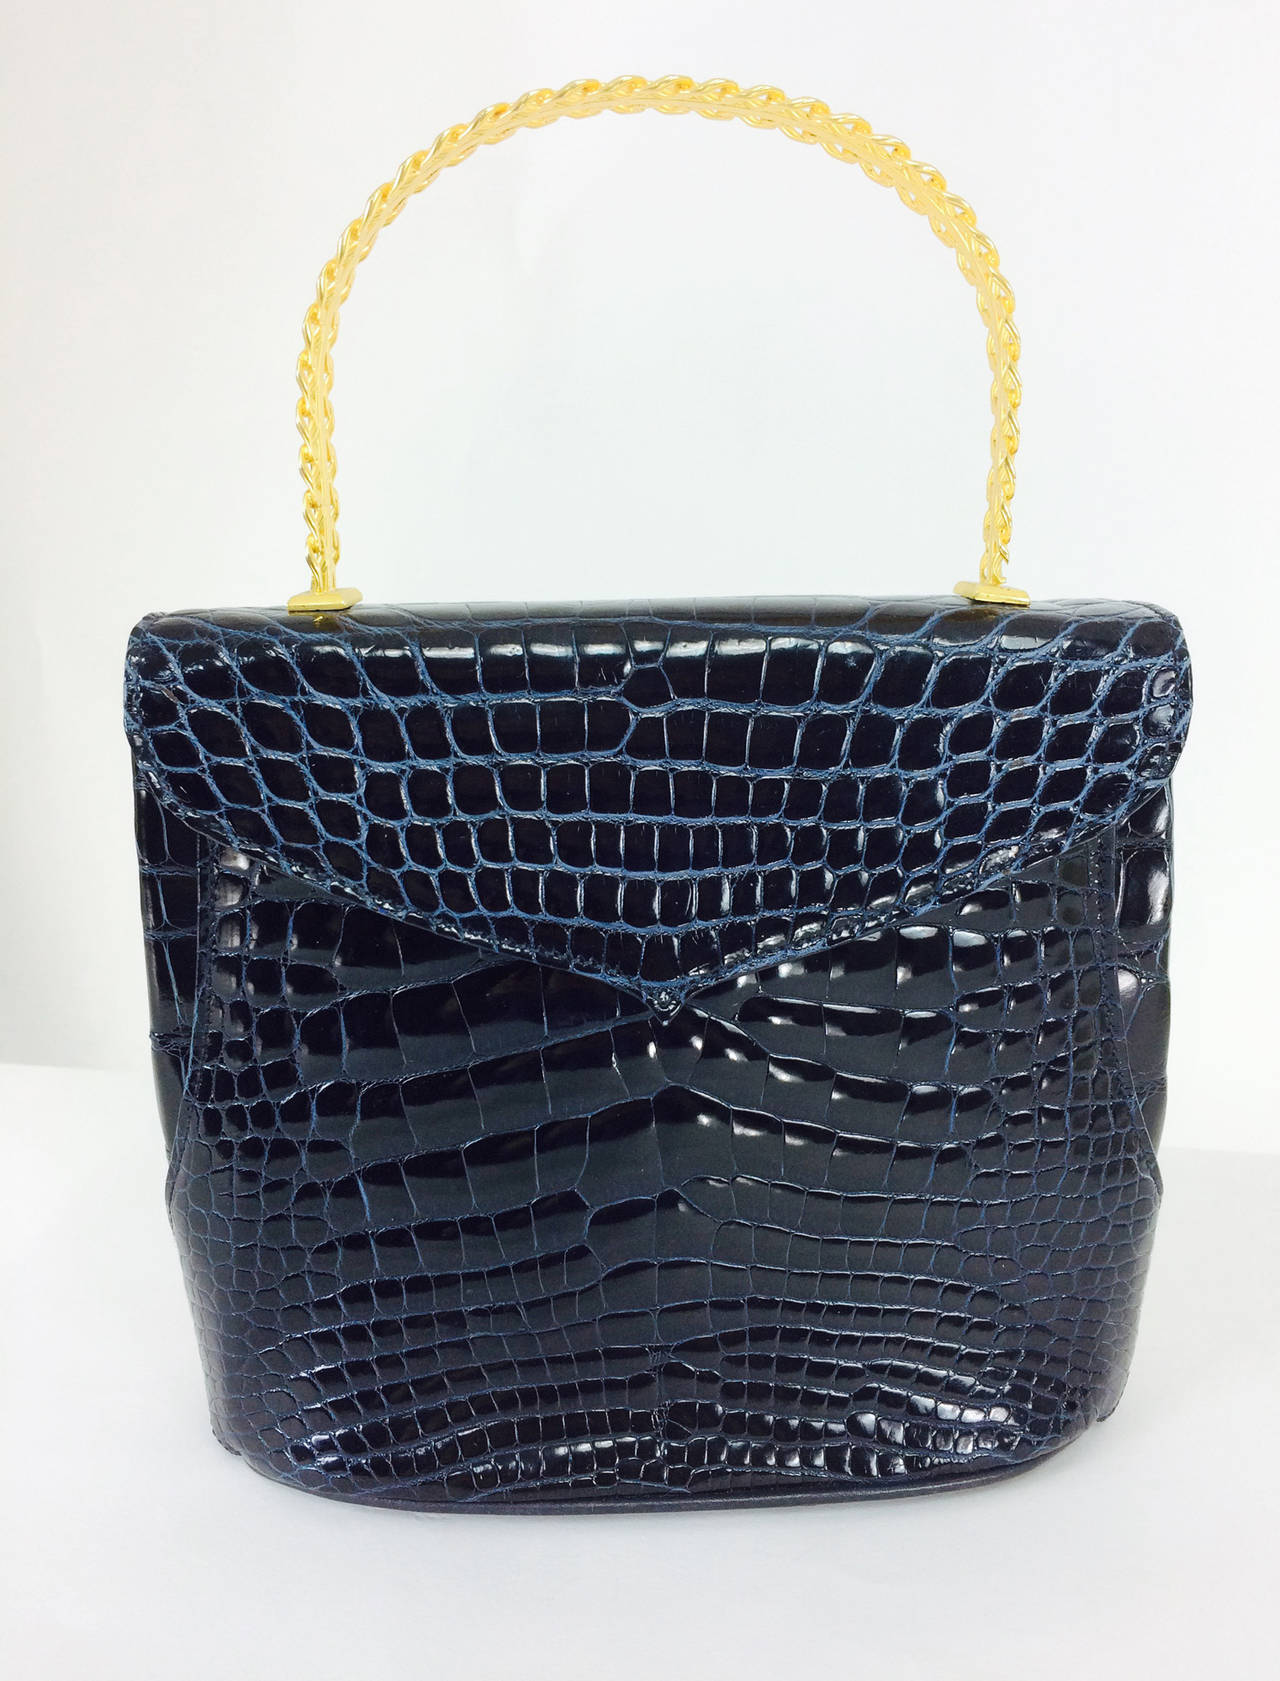 Lana Marks Lana of London navy blue glazed alligator handbag 1980s...Beautiful glazed alligator with a fixed gold woven handle that has a strip of alligator to match the bag...Lined in navy blue leather...The interior has a side zipper compartment